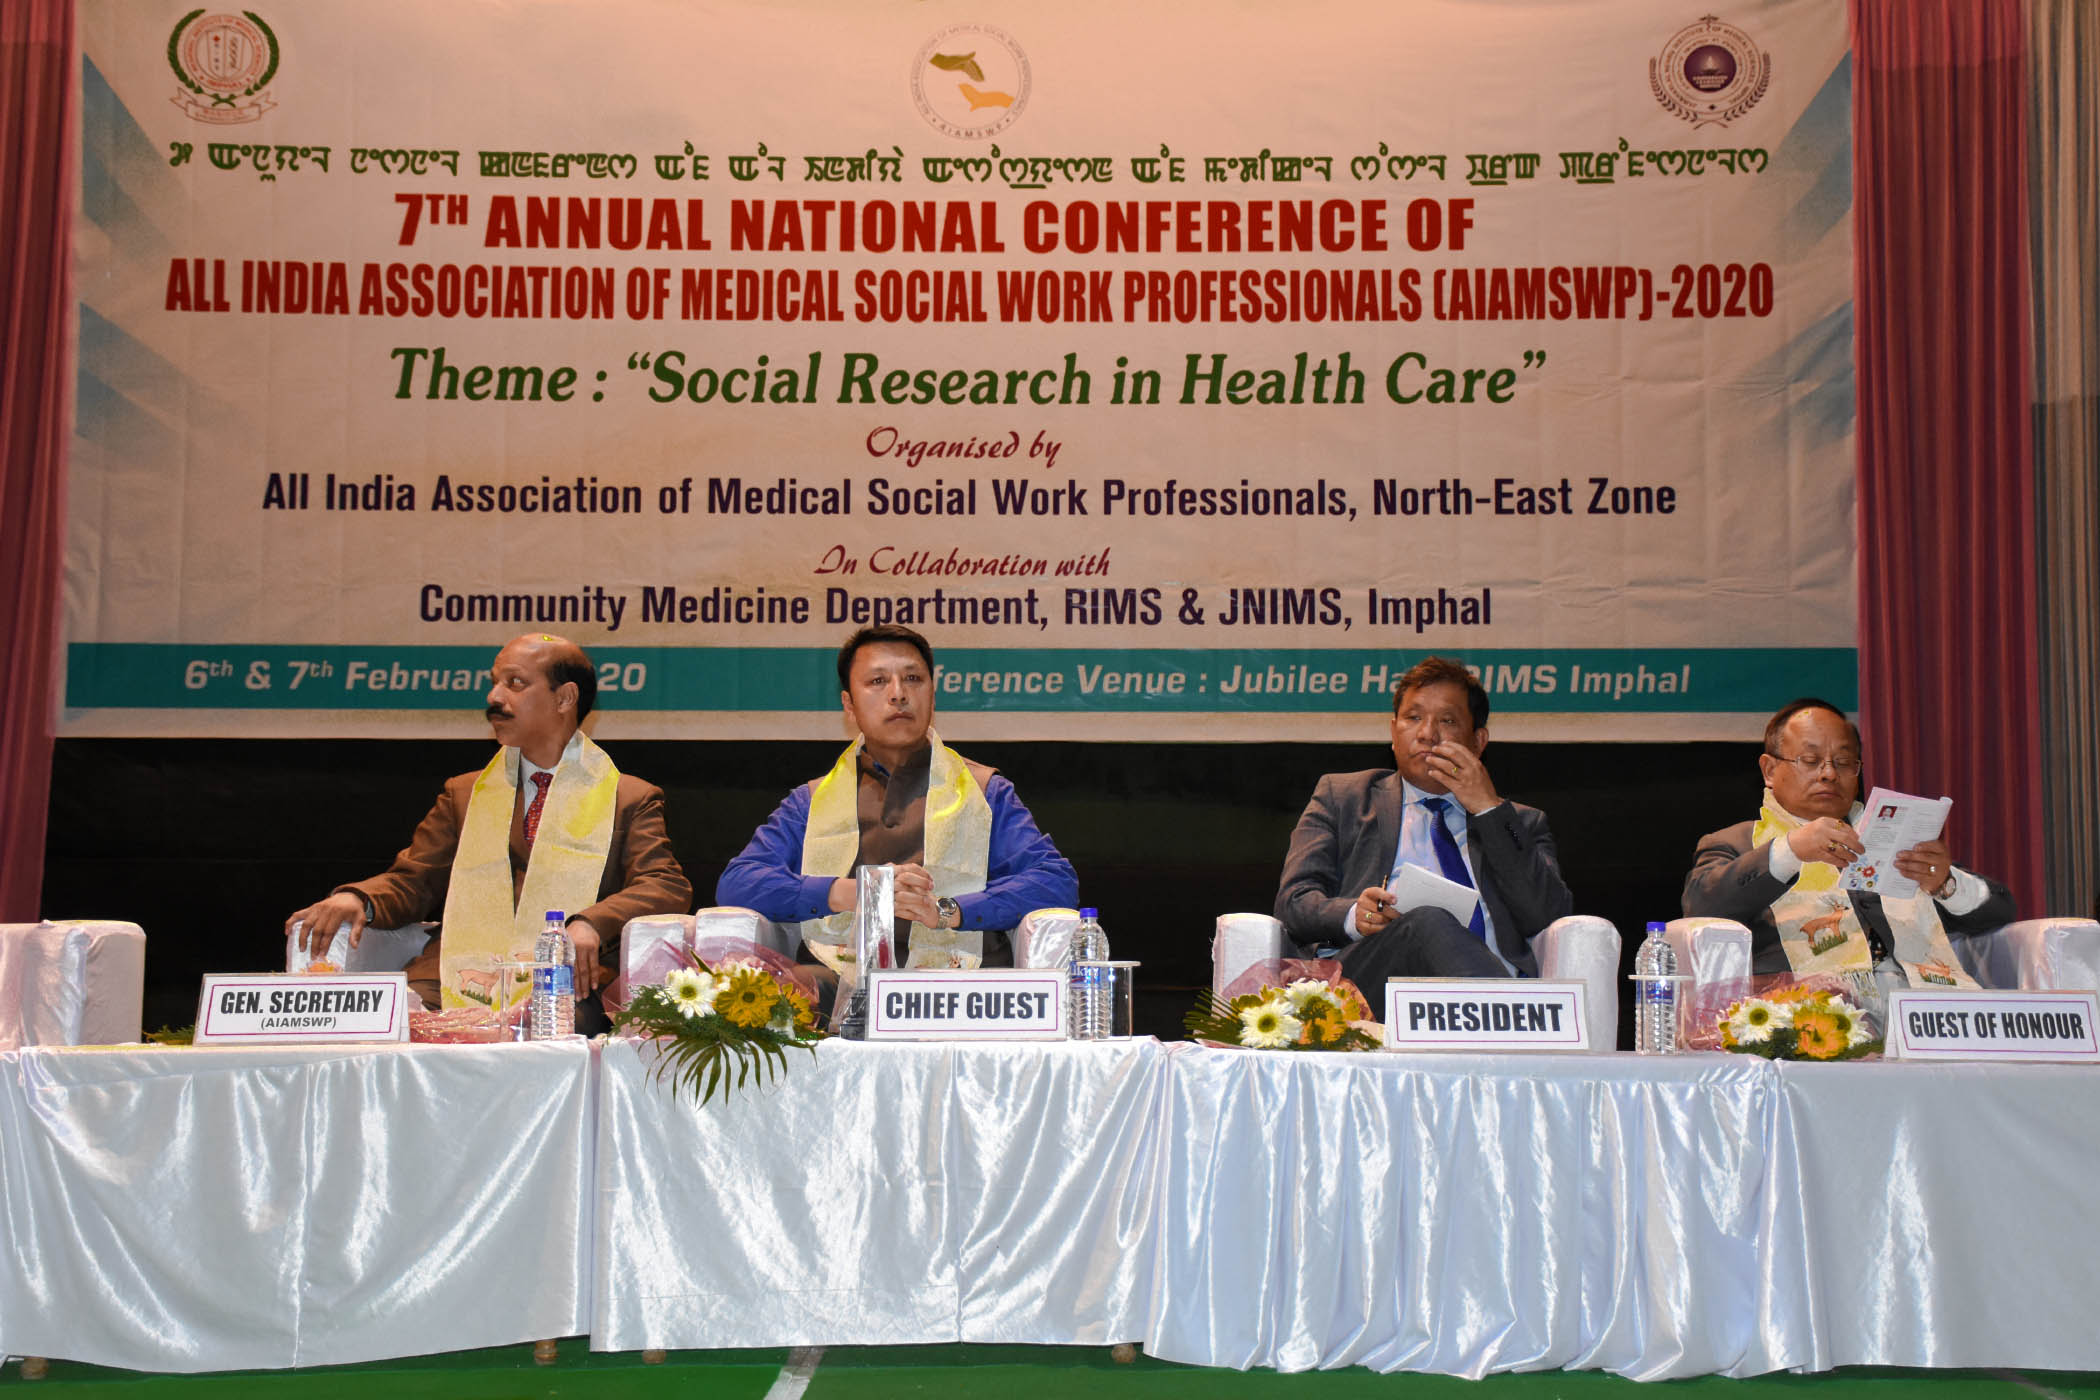 7th annual national conference of AIAMSWP concludes